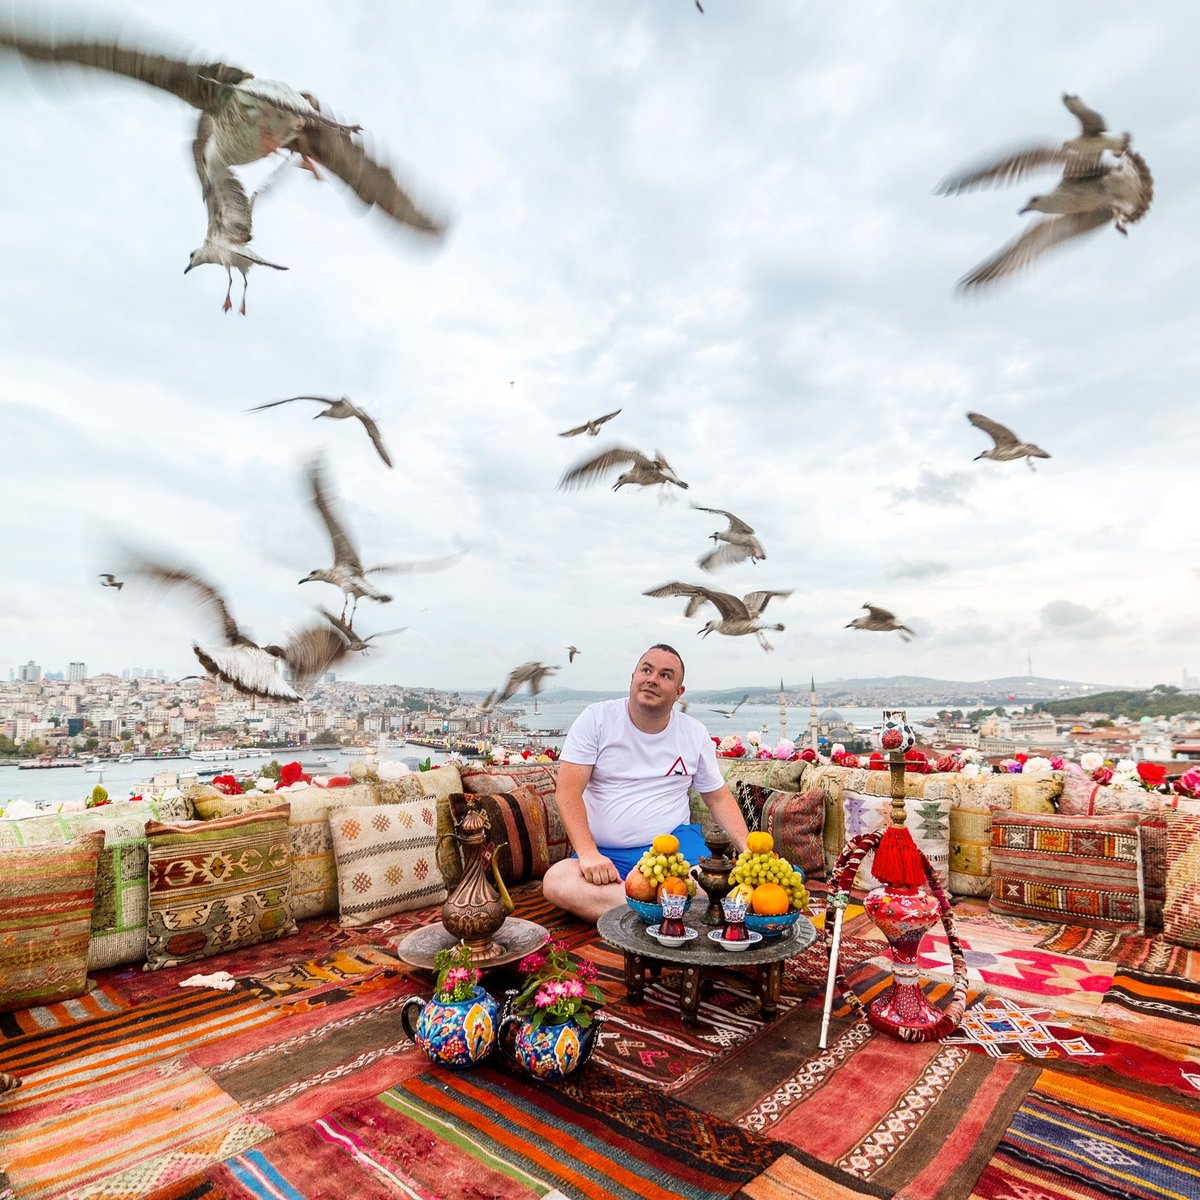 Photoshoot with Duncan from Wales. Contact & book your shoot in Istanbul. #İstanbul #photoshoot #Travel #photography #photographer #photo #photos https://t.co/eSWE4hHYJA